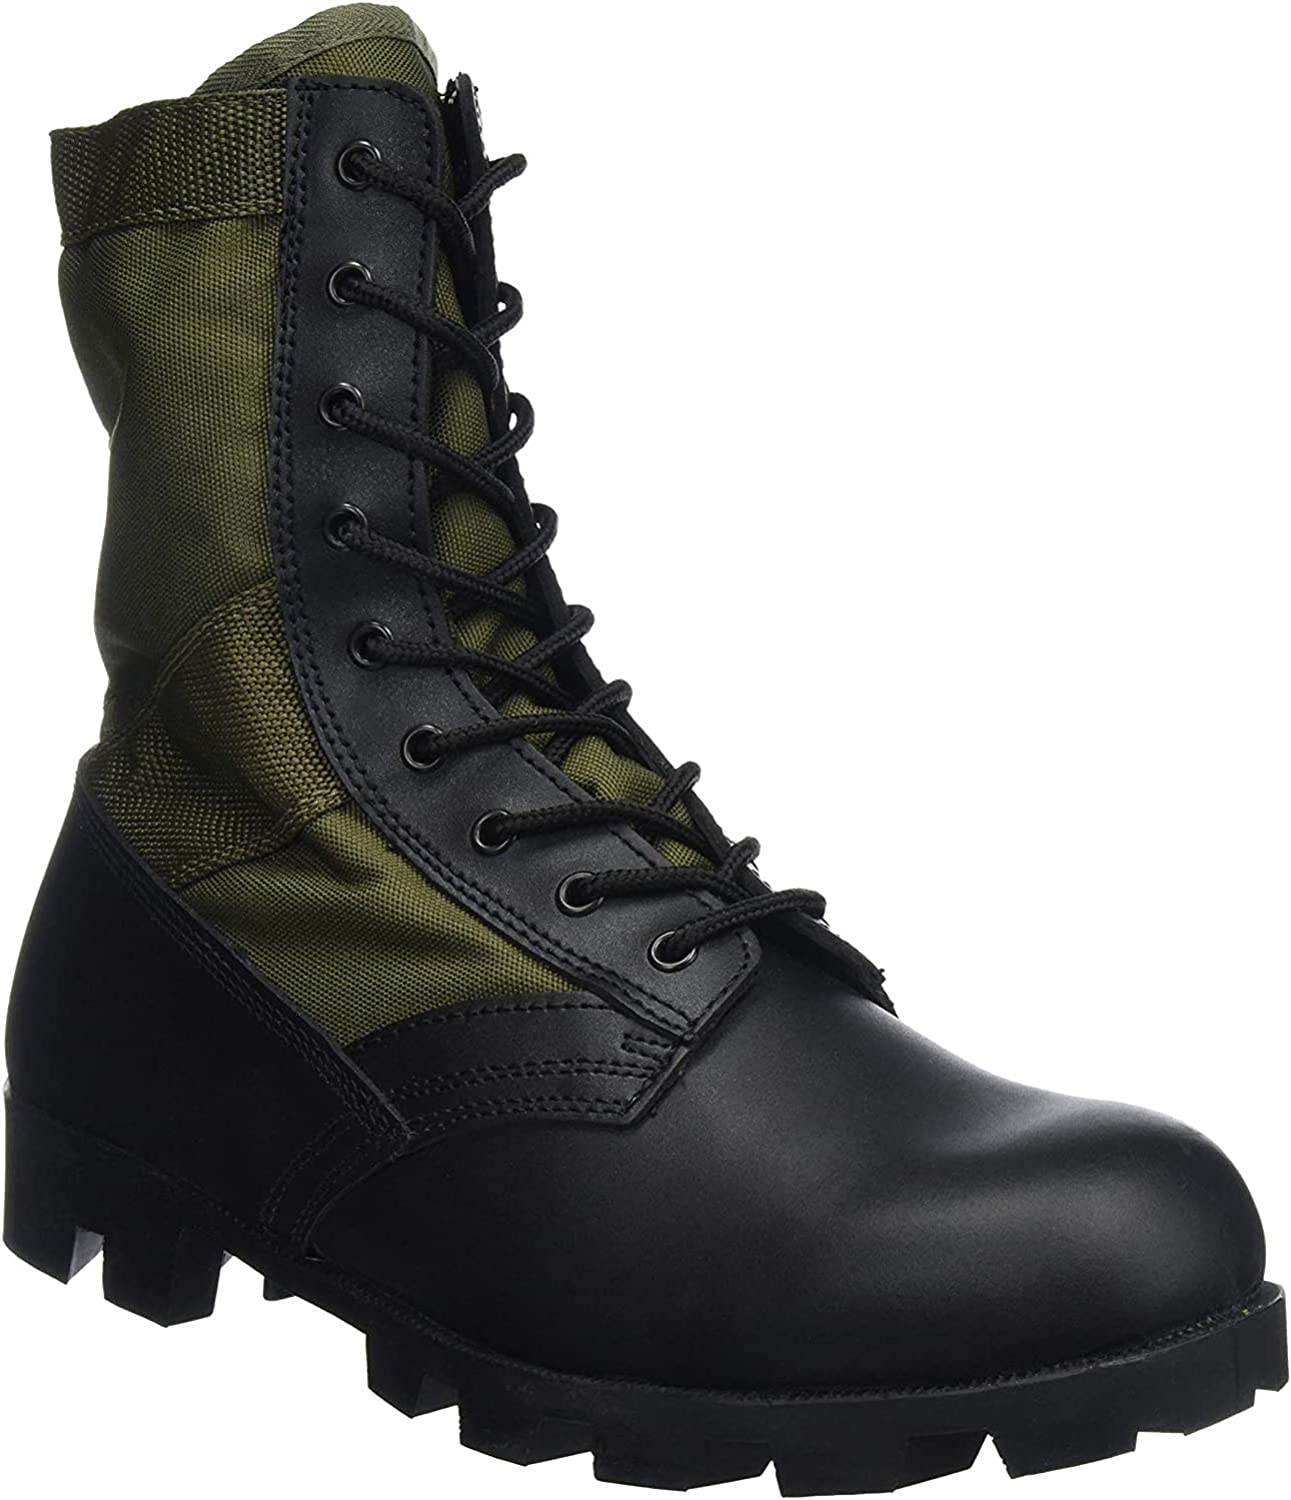 Mil-Tec US Jungle Combat Large special price Boots Ranking TOP10 Size Black